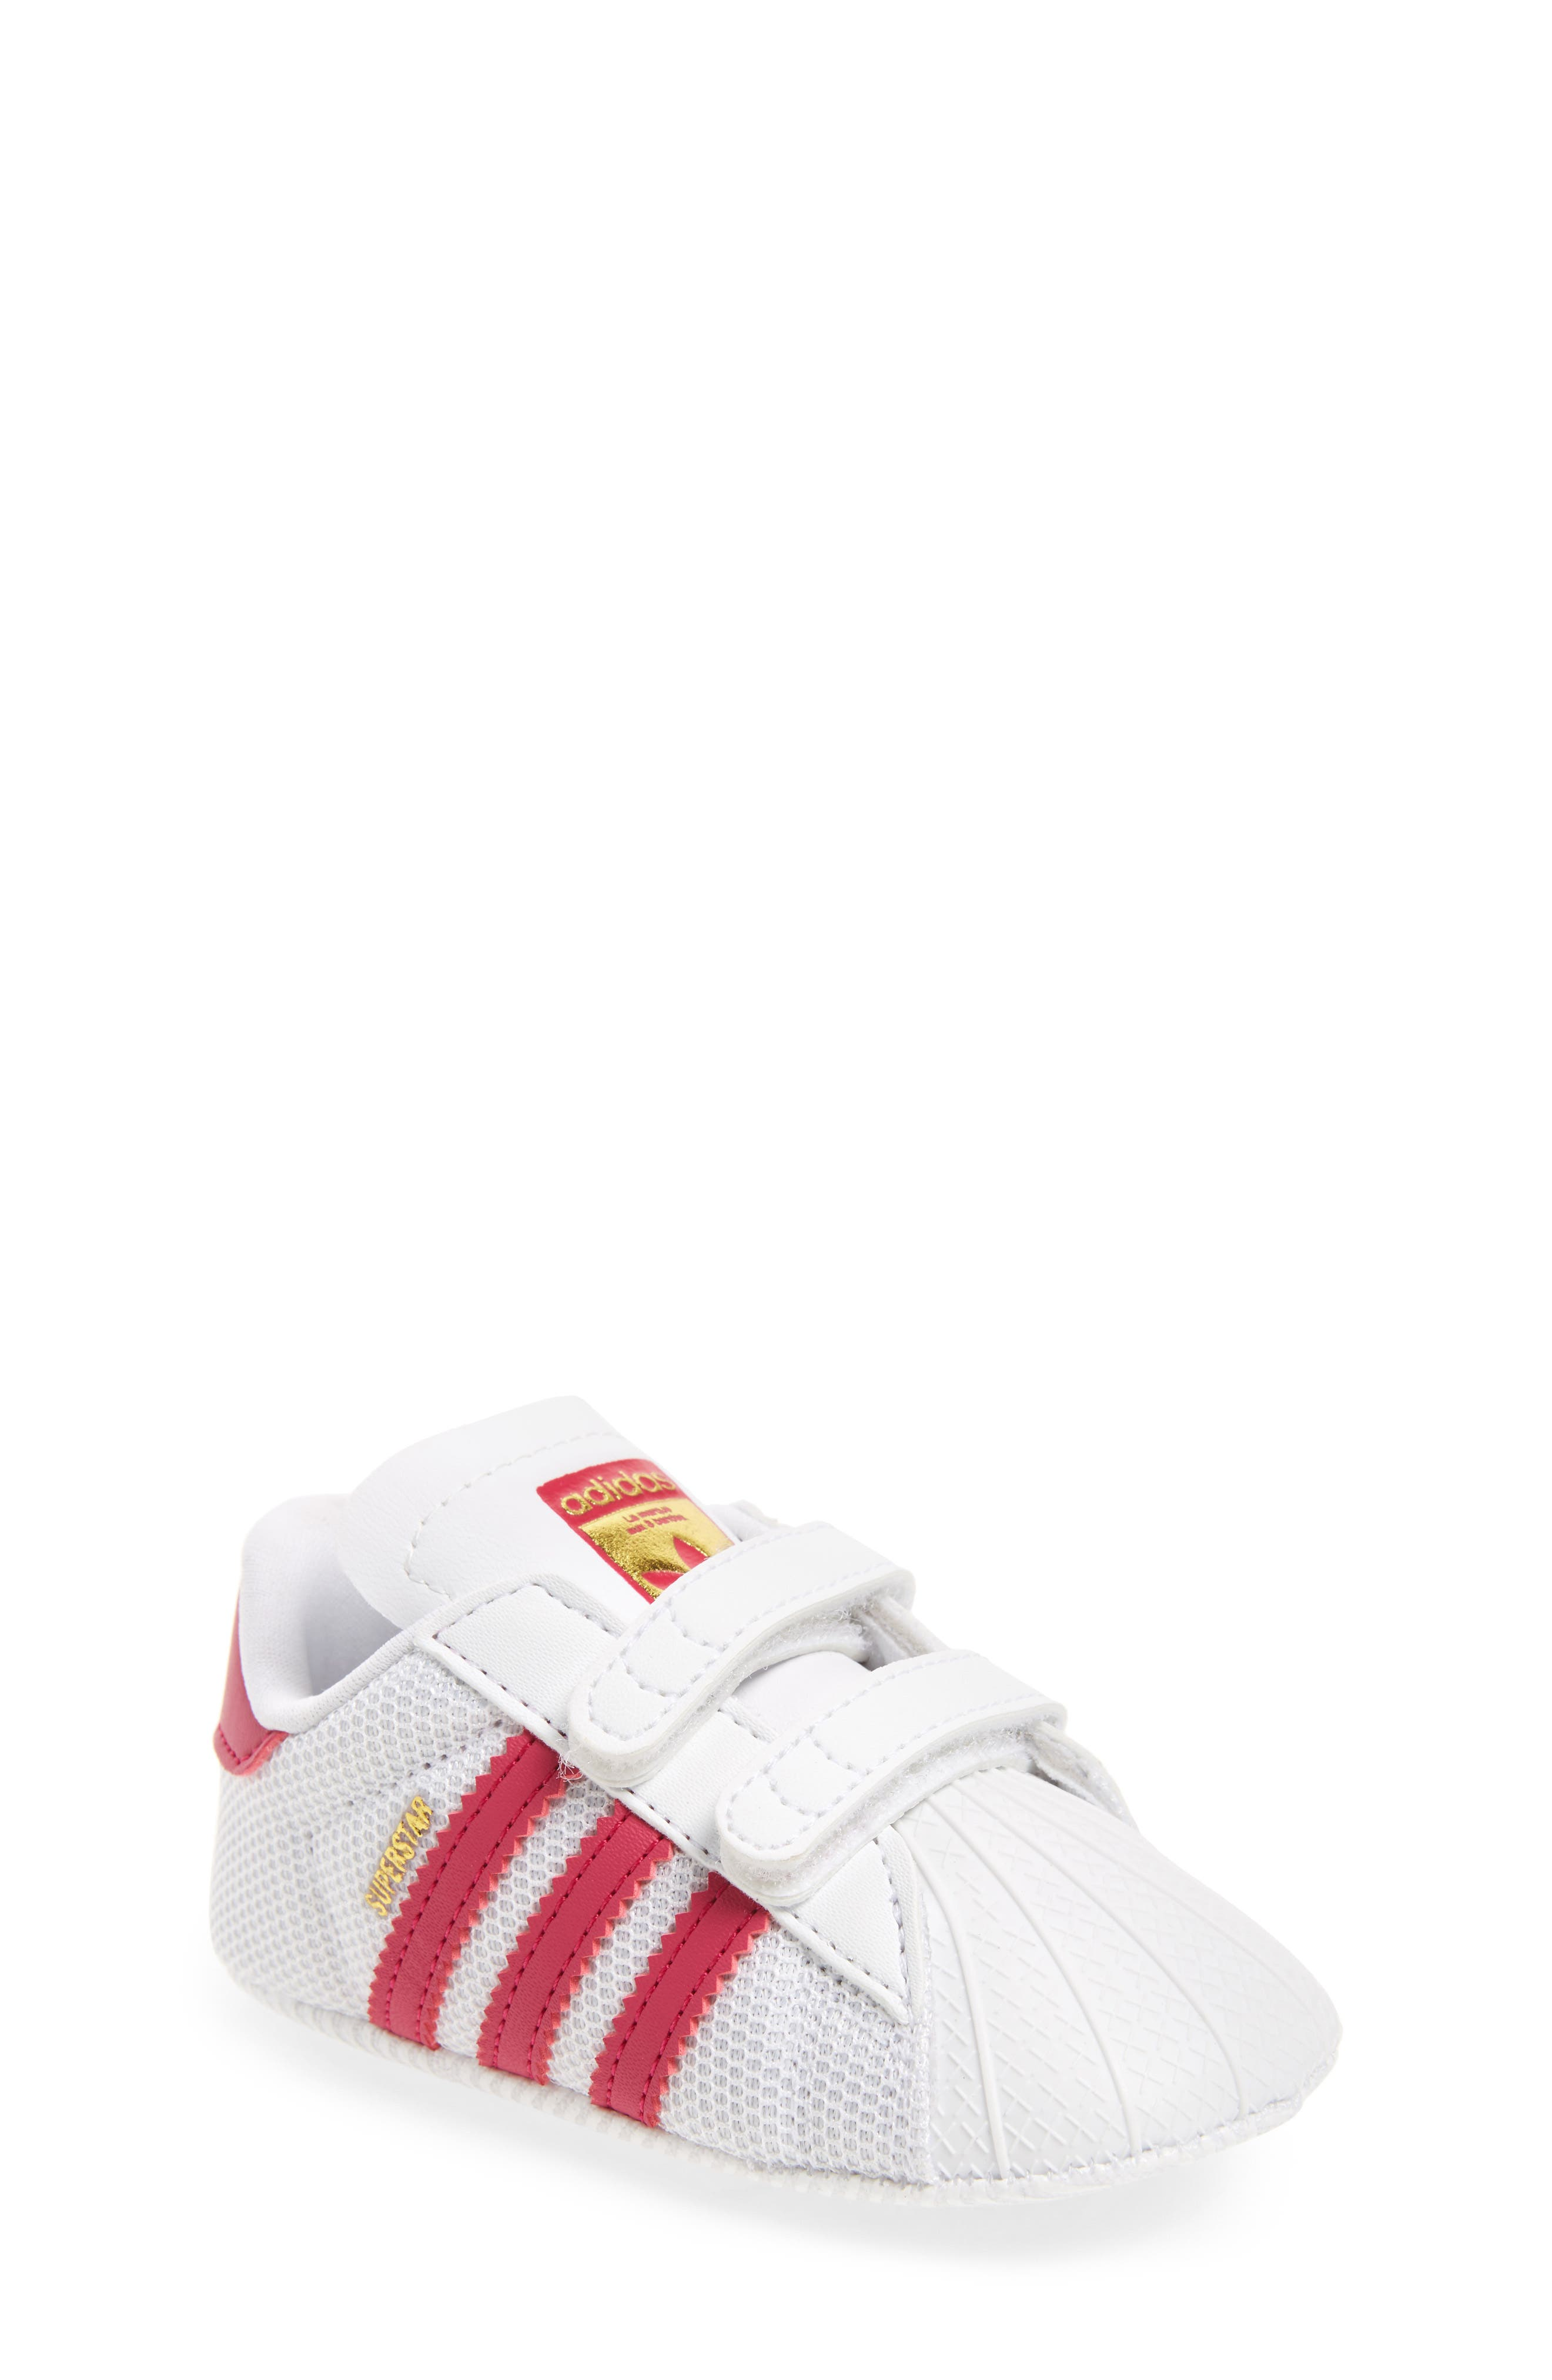 ADIDAS Superstar Sneaker, Main, color, WHITE/ PINK